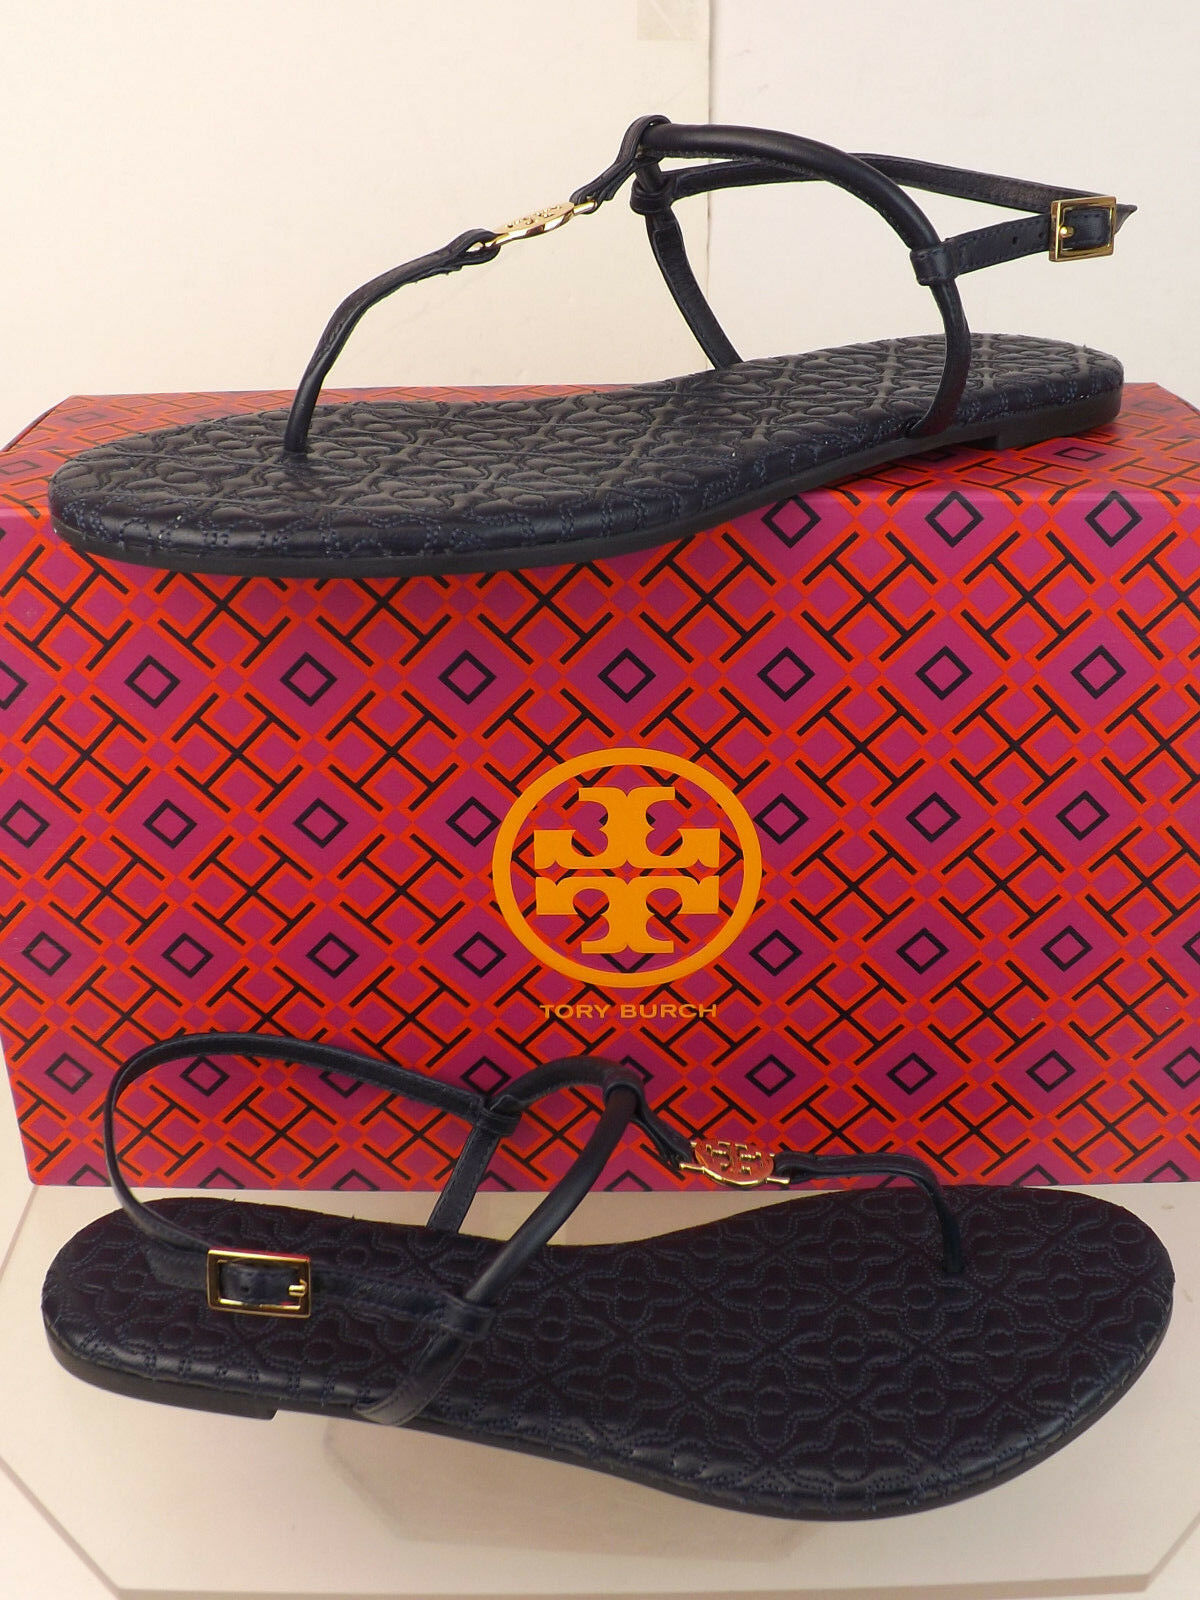 NIB TORY BURCH NAVY BRYANT QUILTED LEATHER oro REVA THONG FLATS SANDALS 9.5